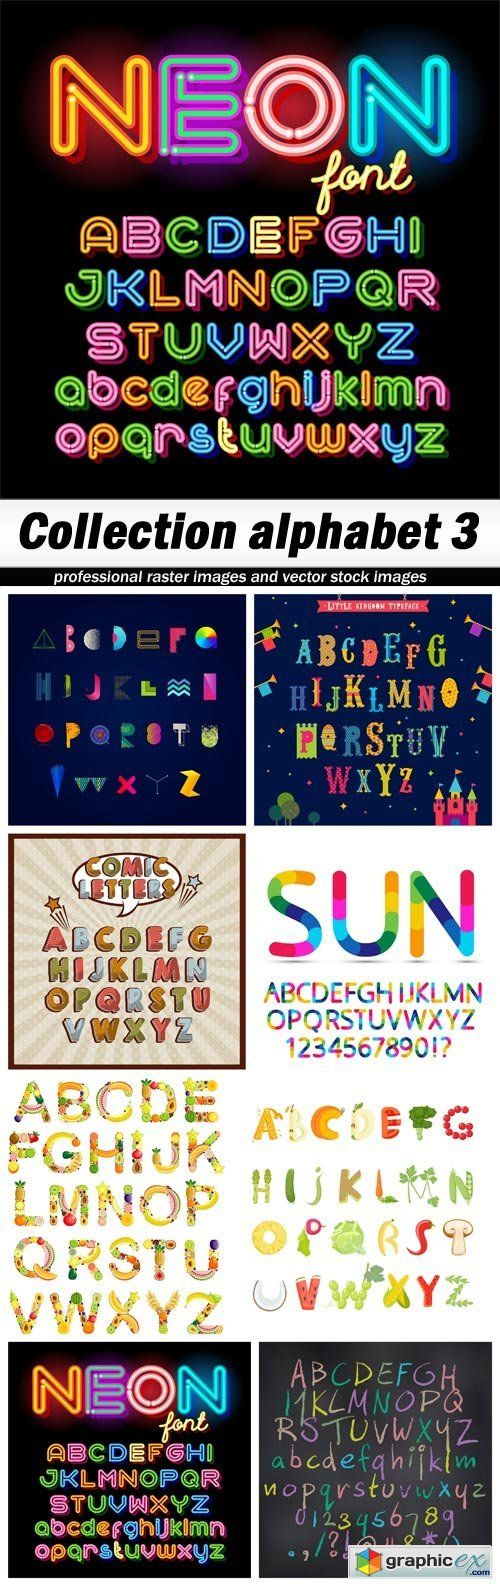 Collection alphabet 3 - 8 EPS